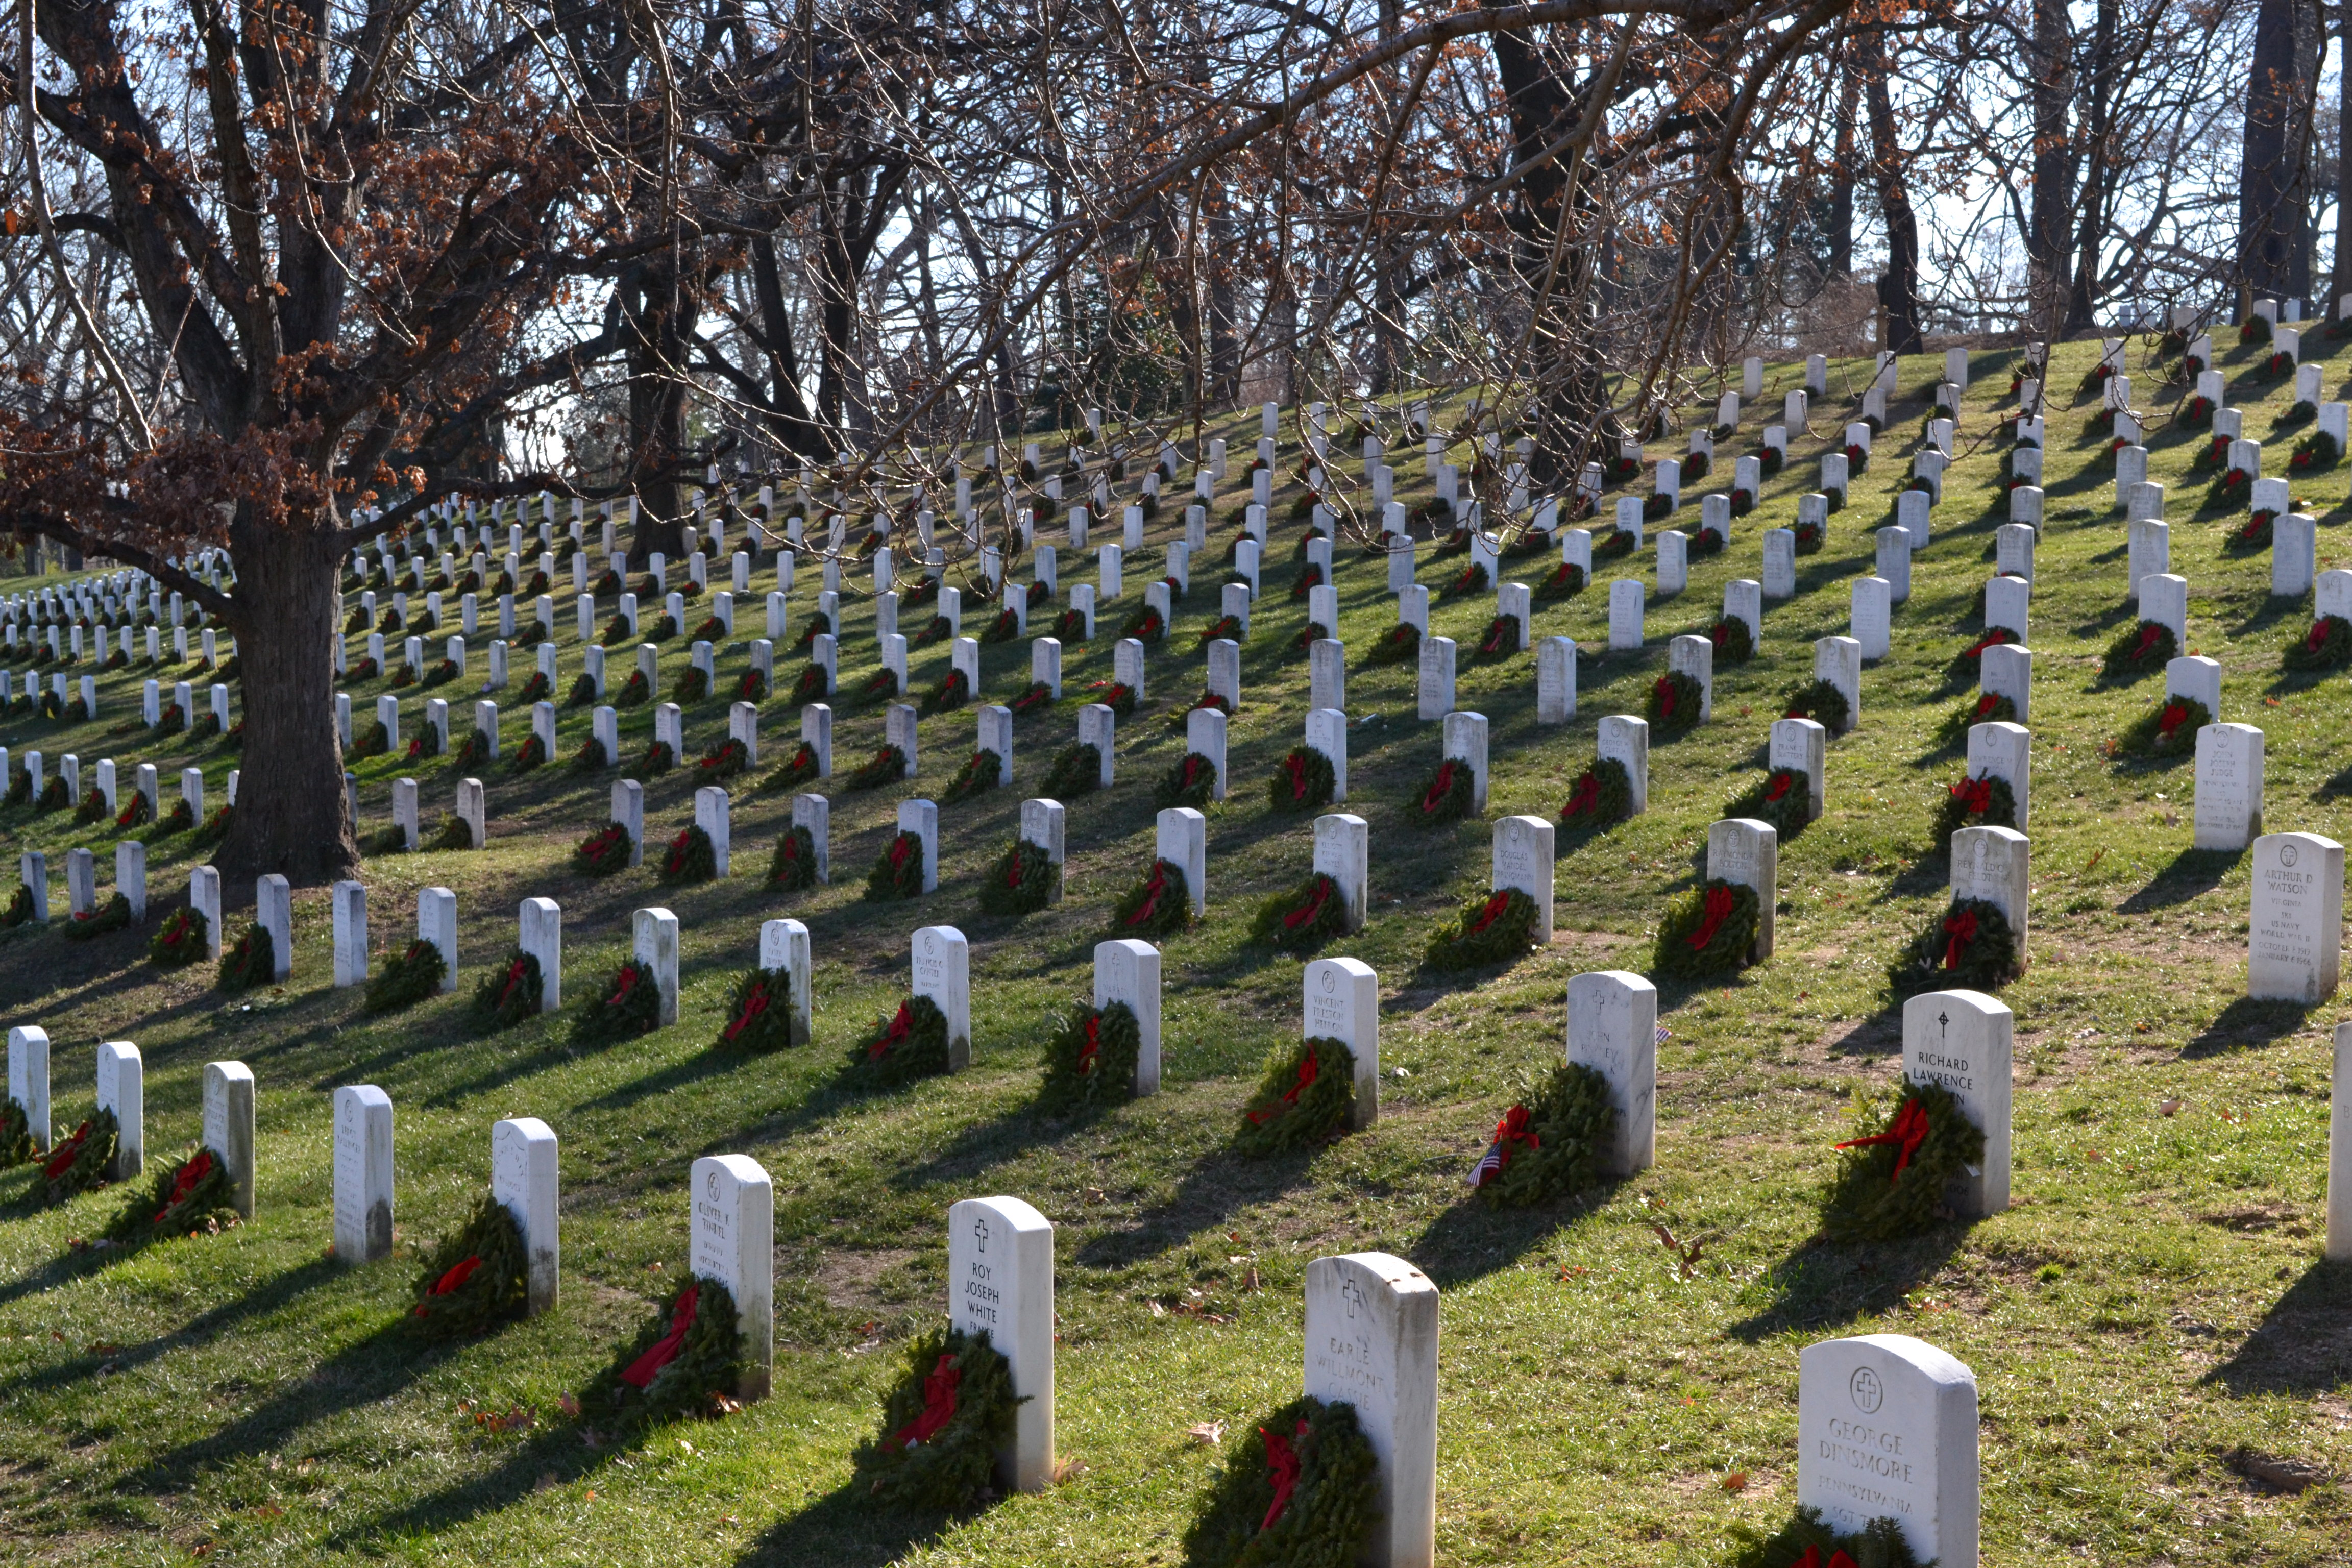 Visiting The Arlington National Cemetery